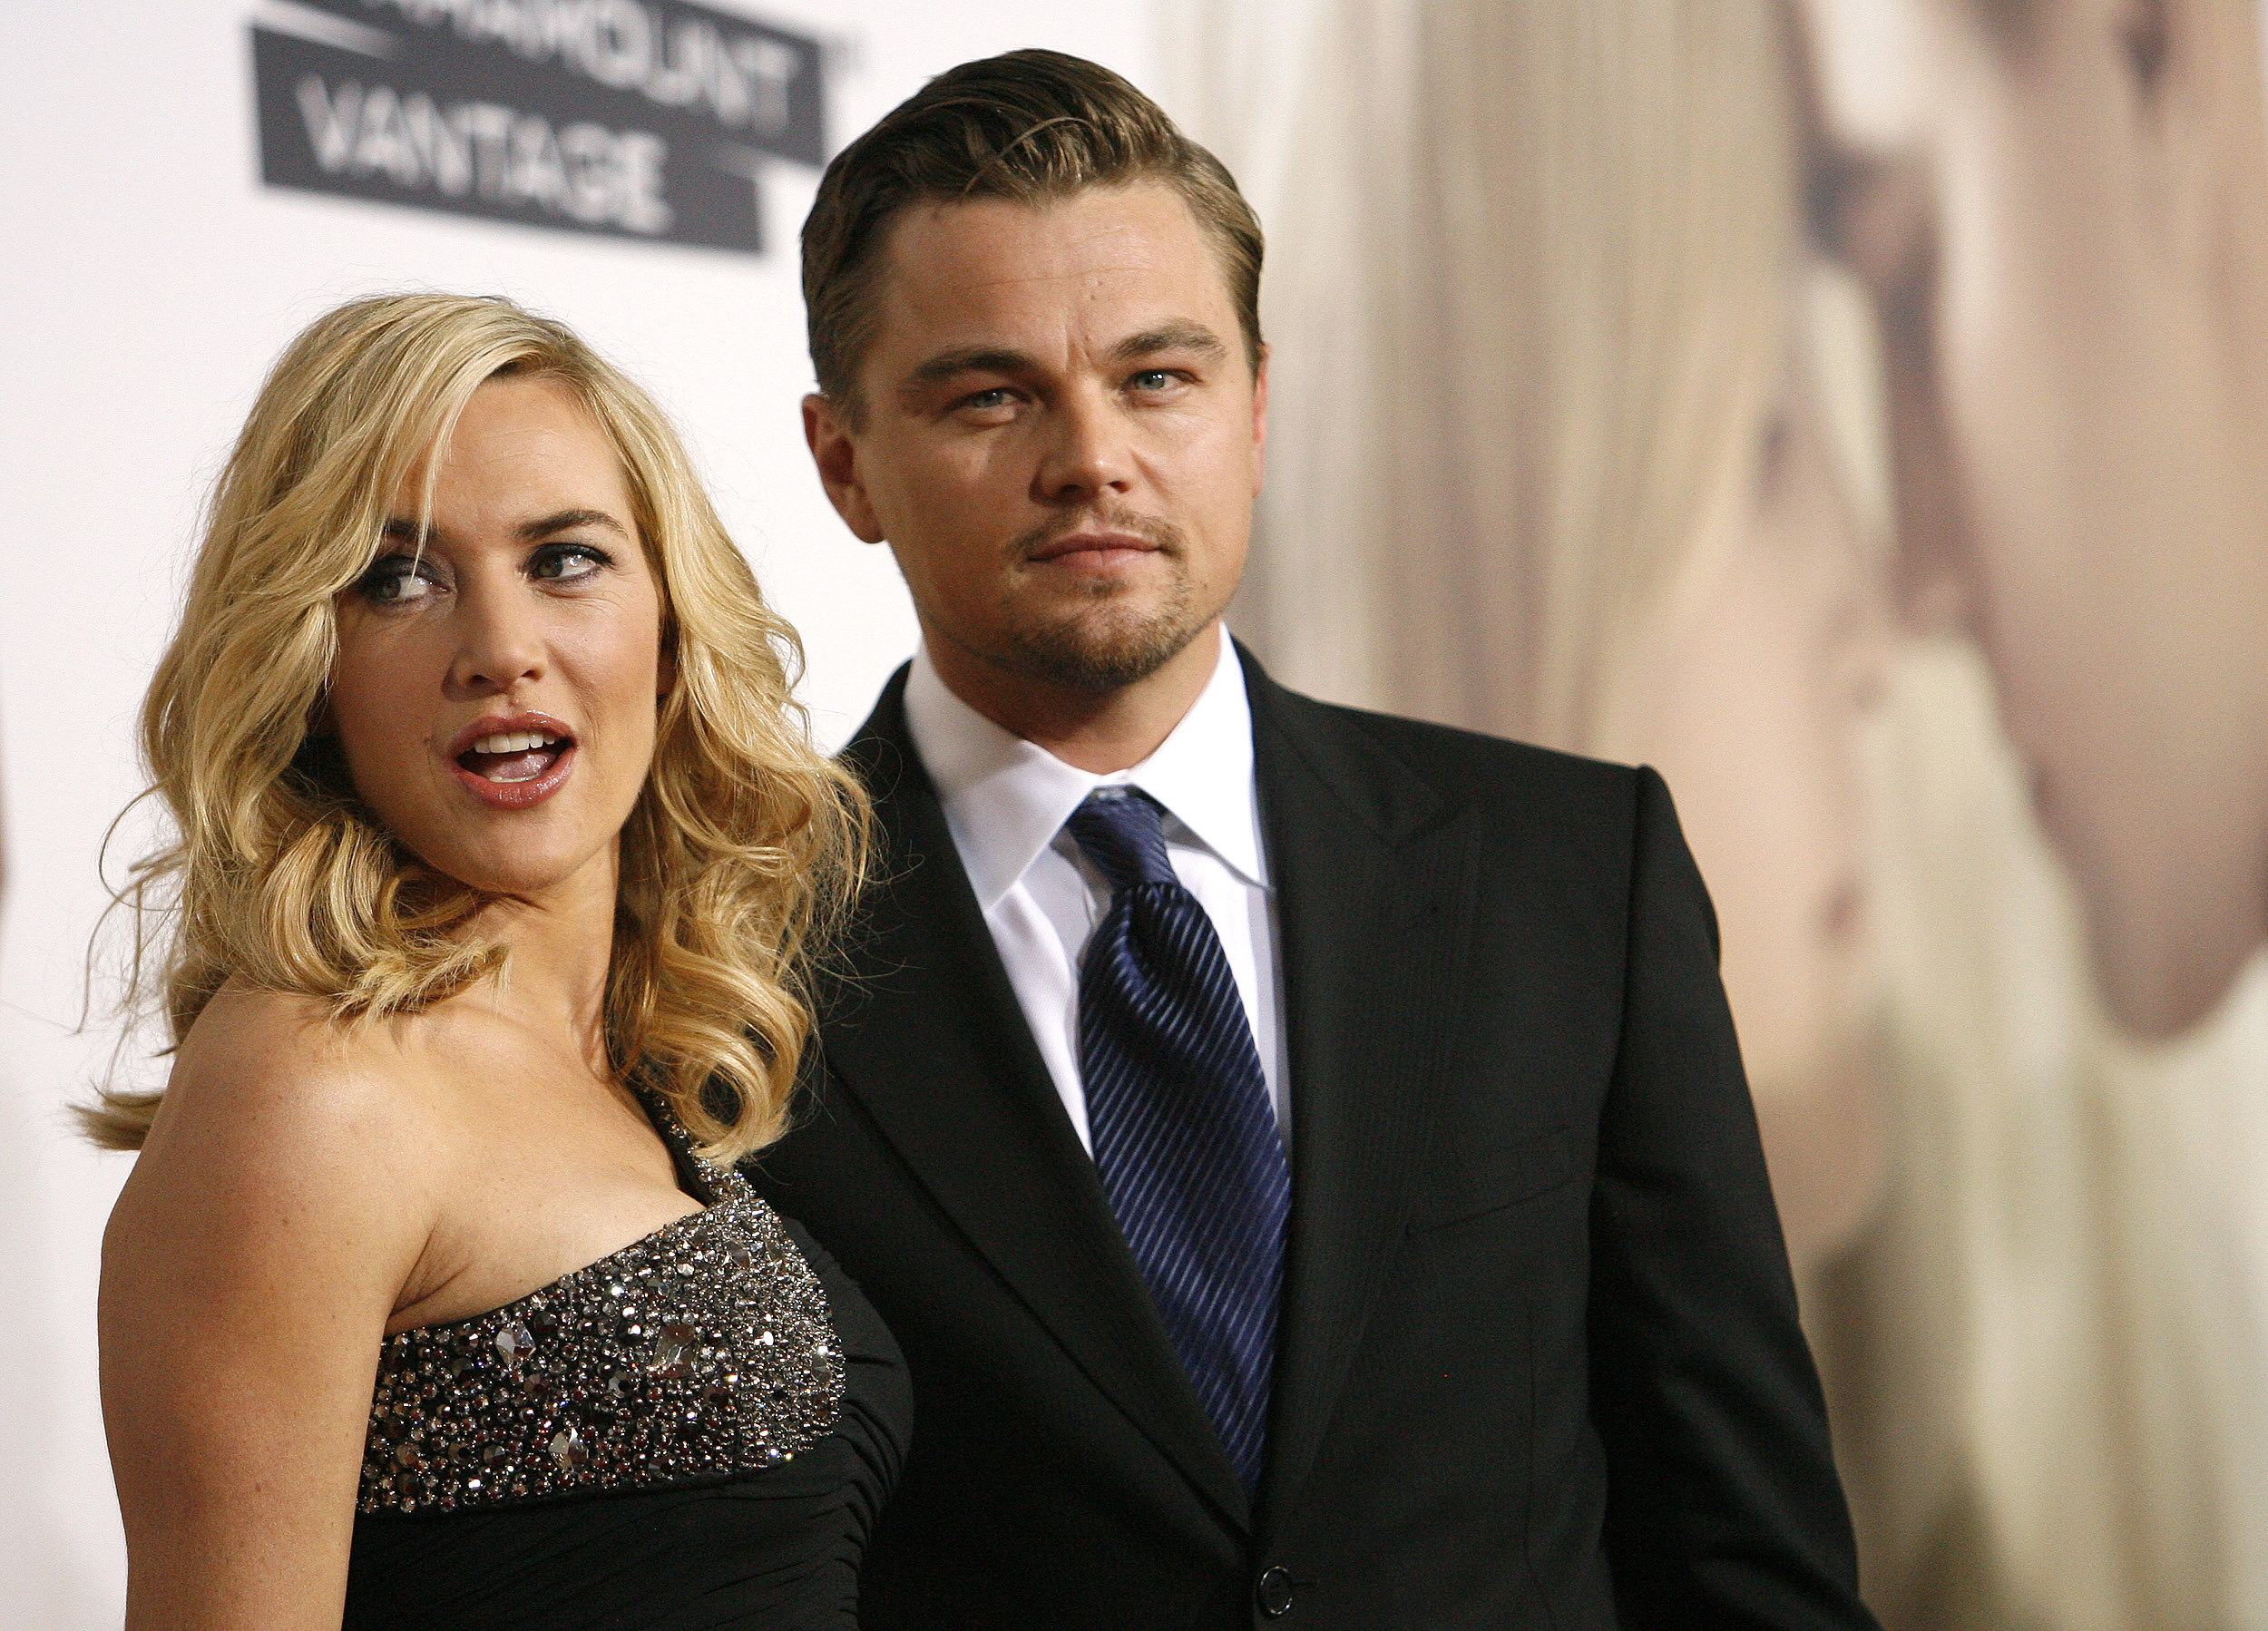 Cast member Kate Winslet poses with co-star Leonardo DiCaprio at the premiere of the movie